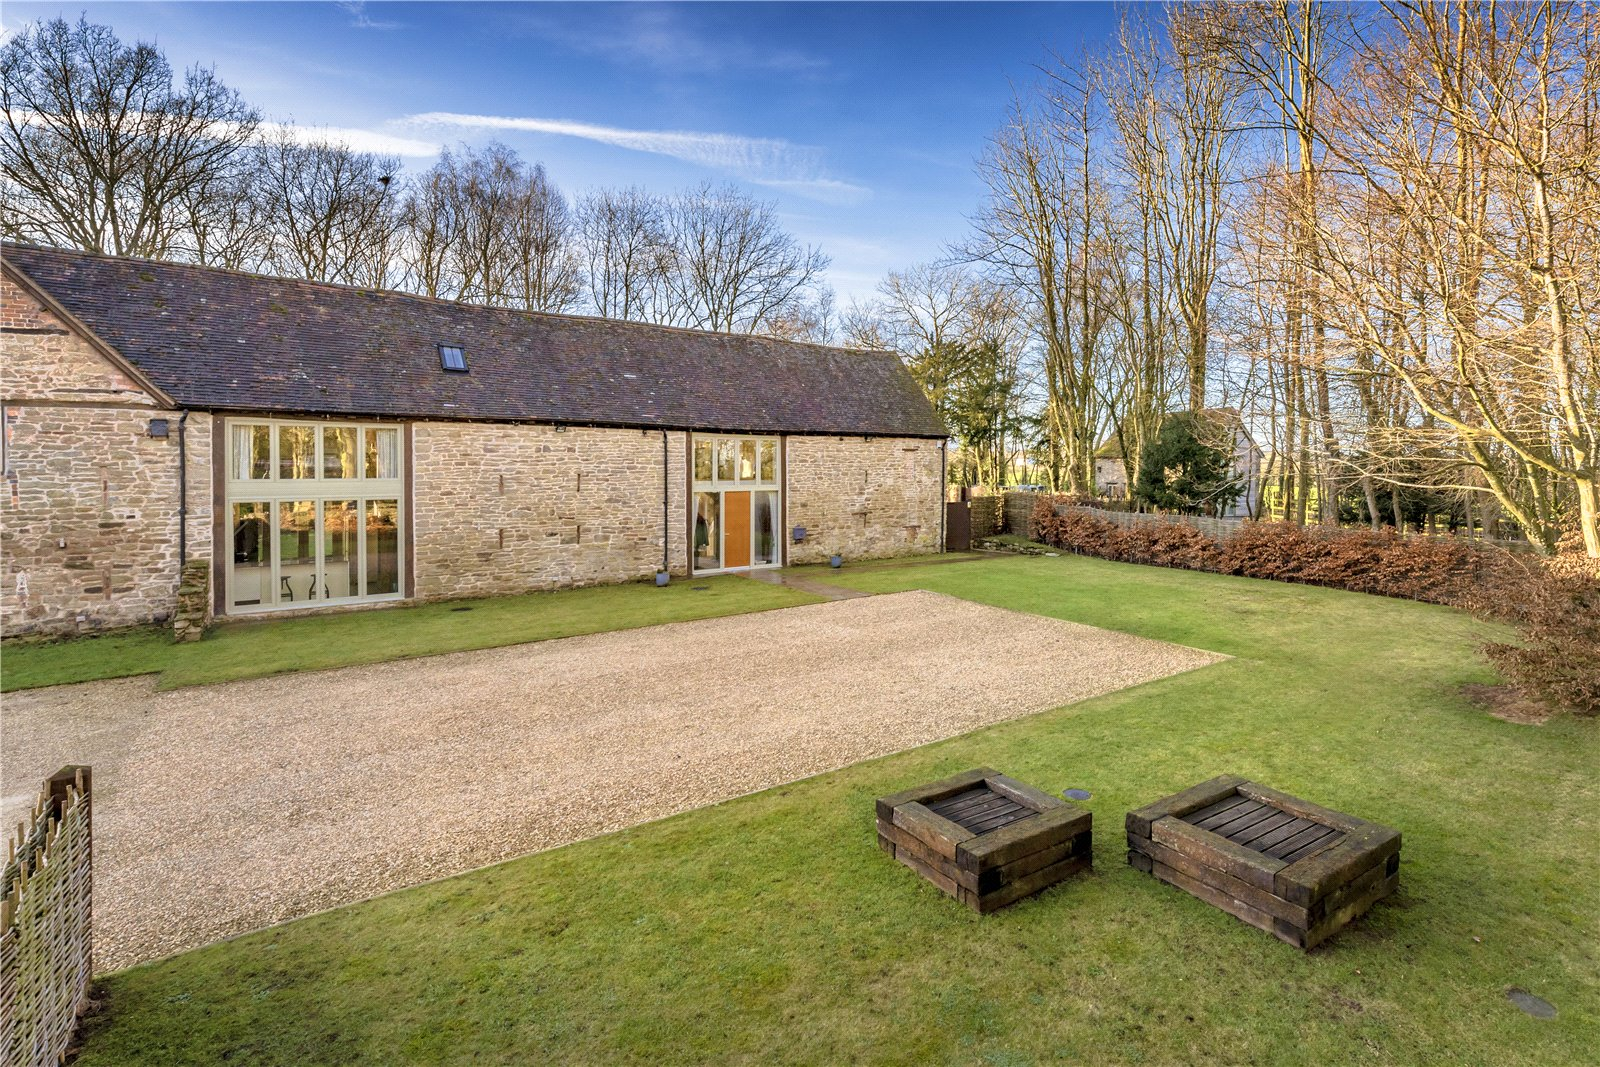 Coppice Barn, Chorley Manor Barns, Chorley, Bridgnorth, Shropshire, WV16